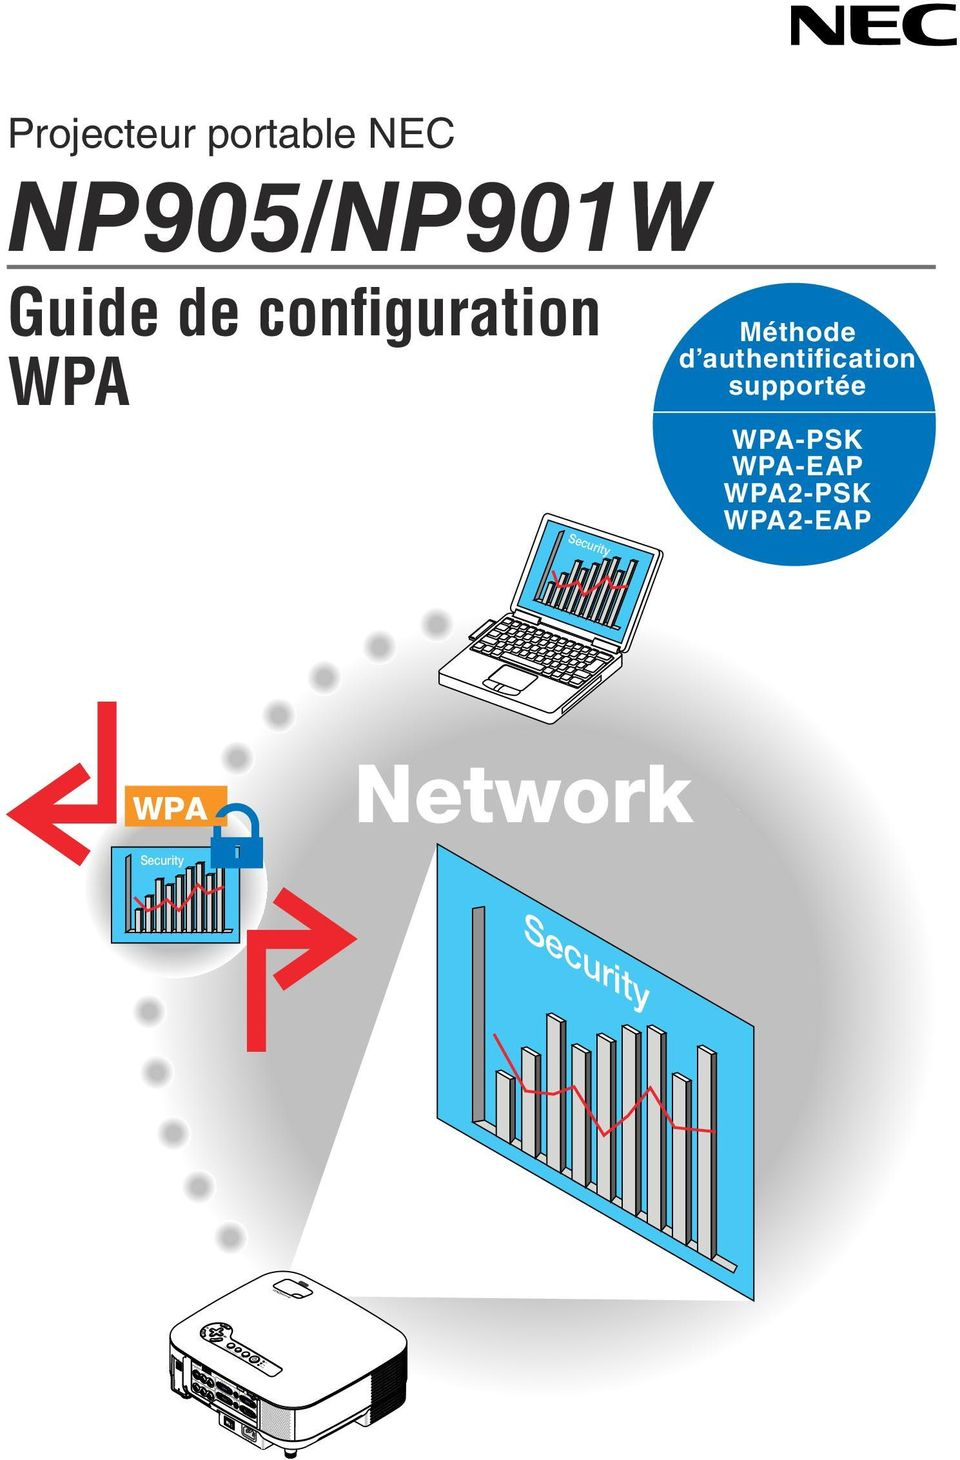 NP905/NP901W Guide de configuration WPA Security Méthode d authentification supportée WPA-PSK WPA-EAP